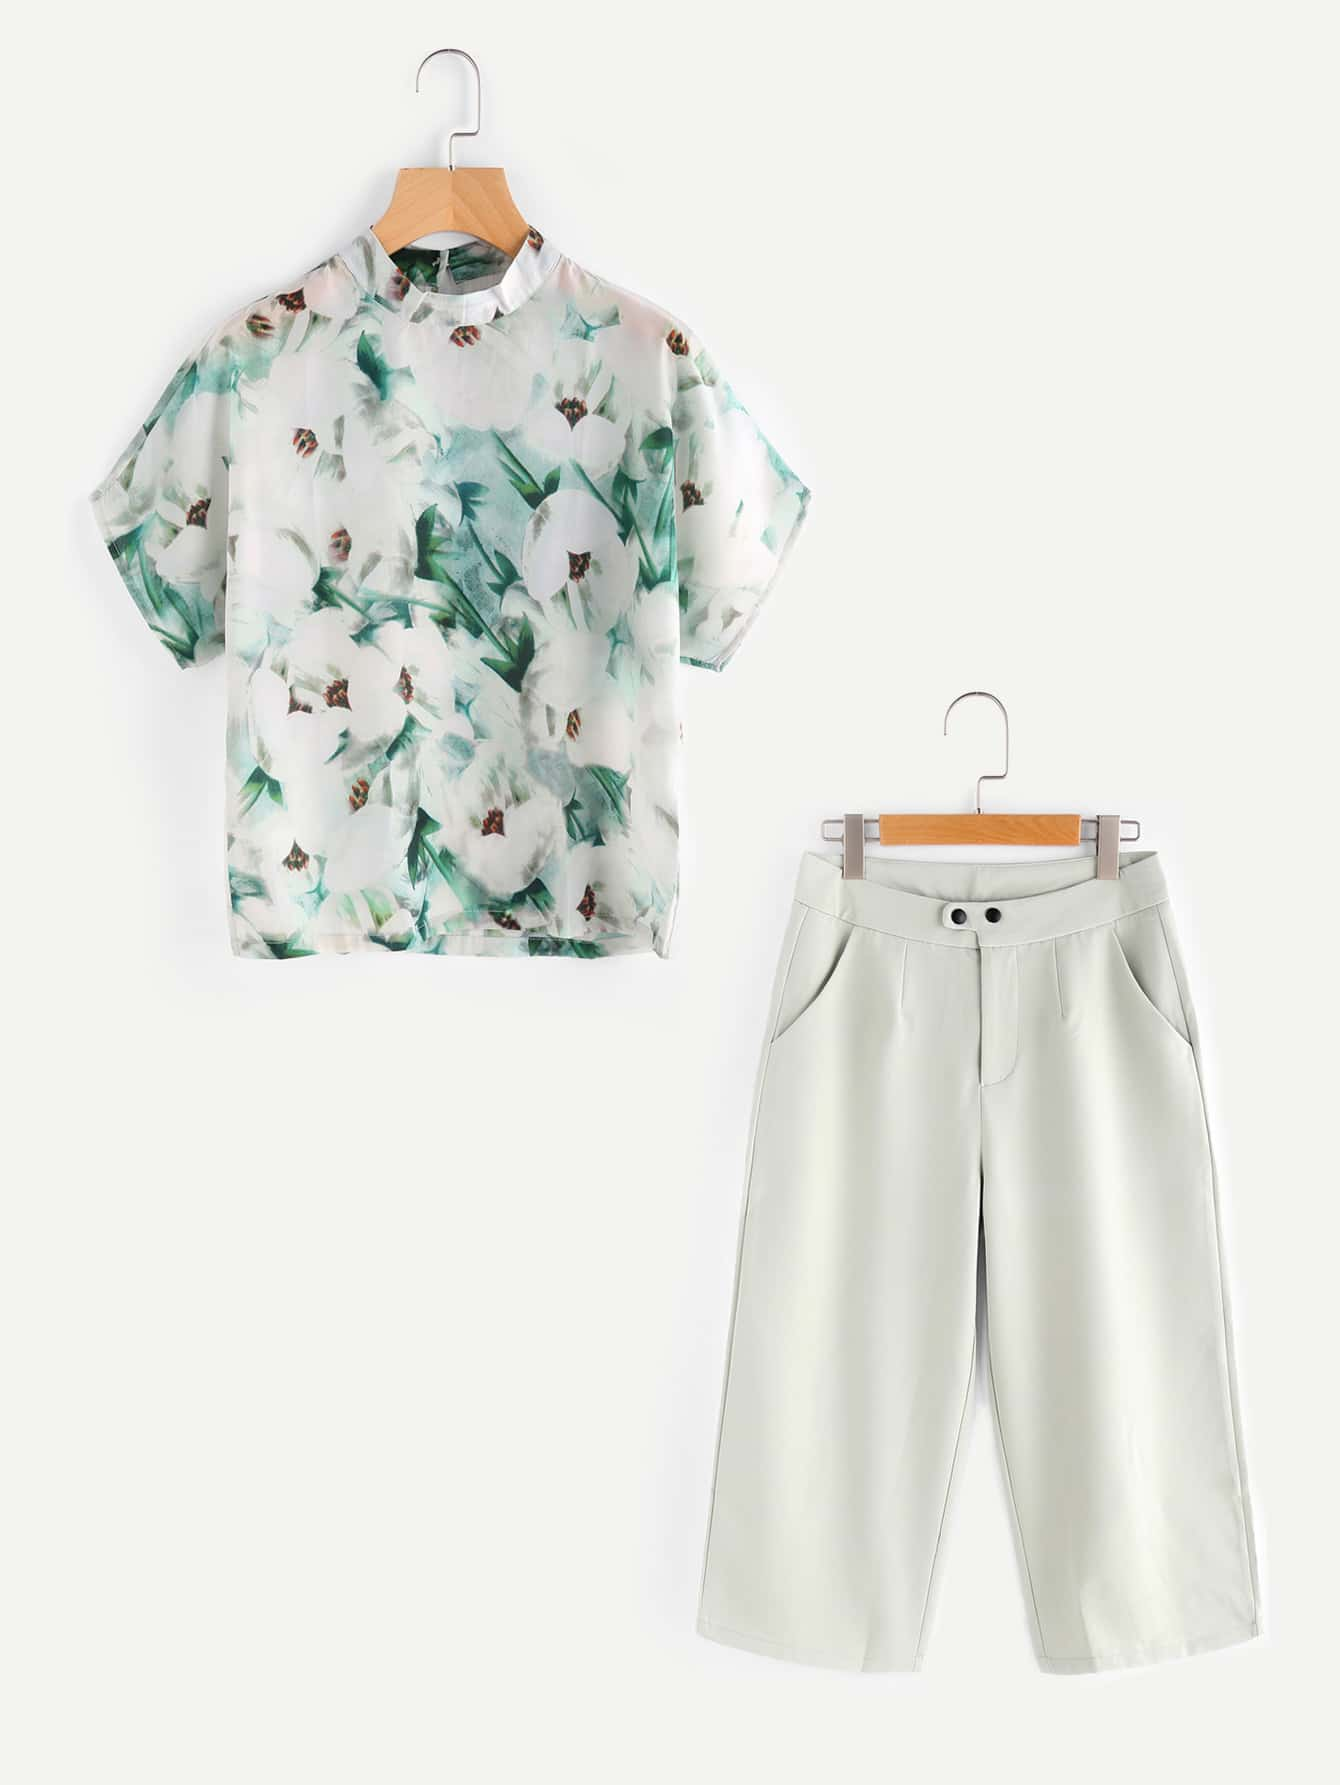 Band Collar Floral Top With Wide Leg Pants twopiece170510202